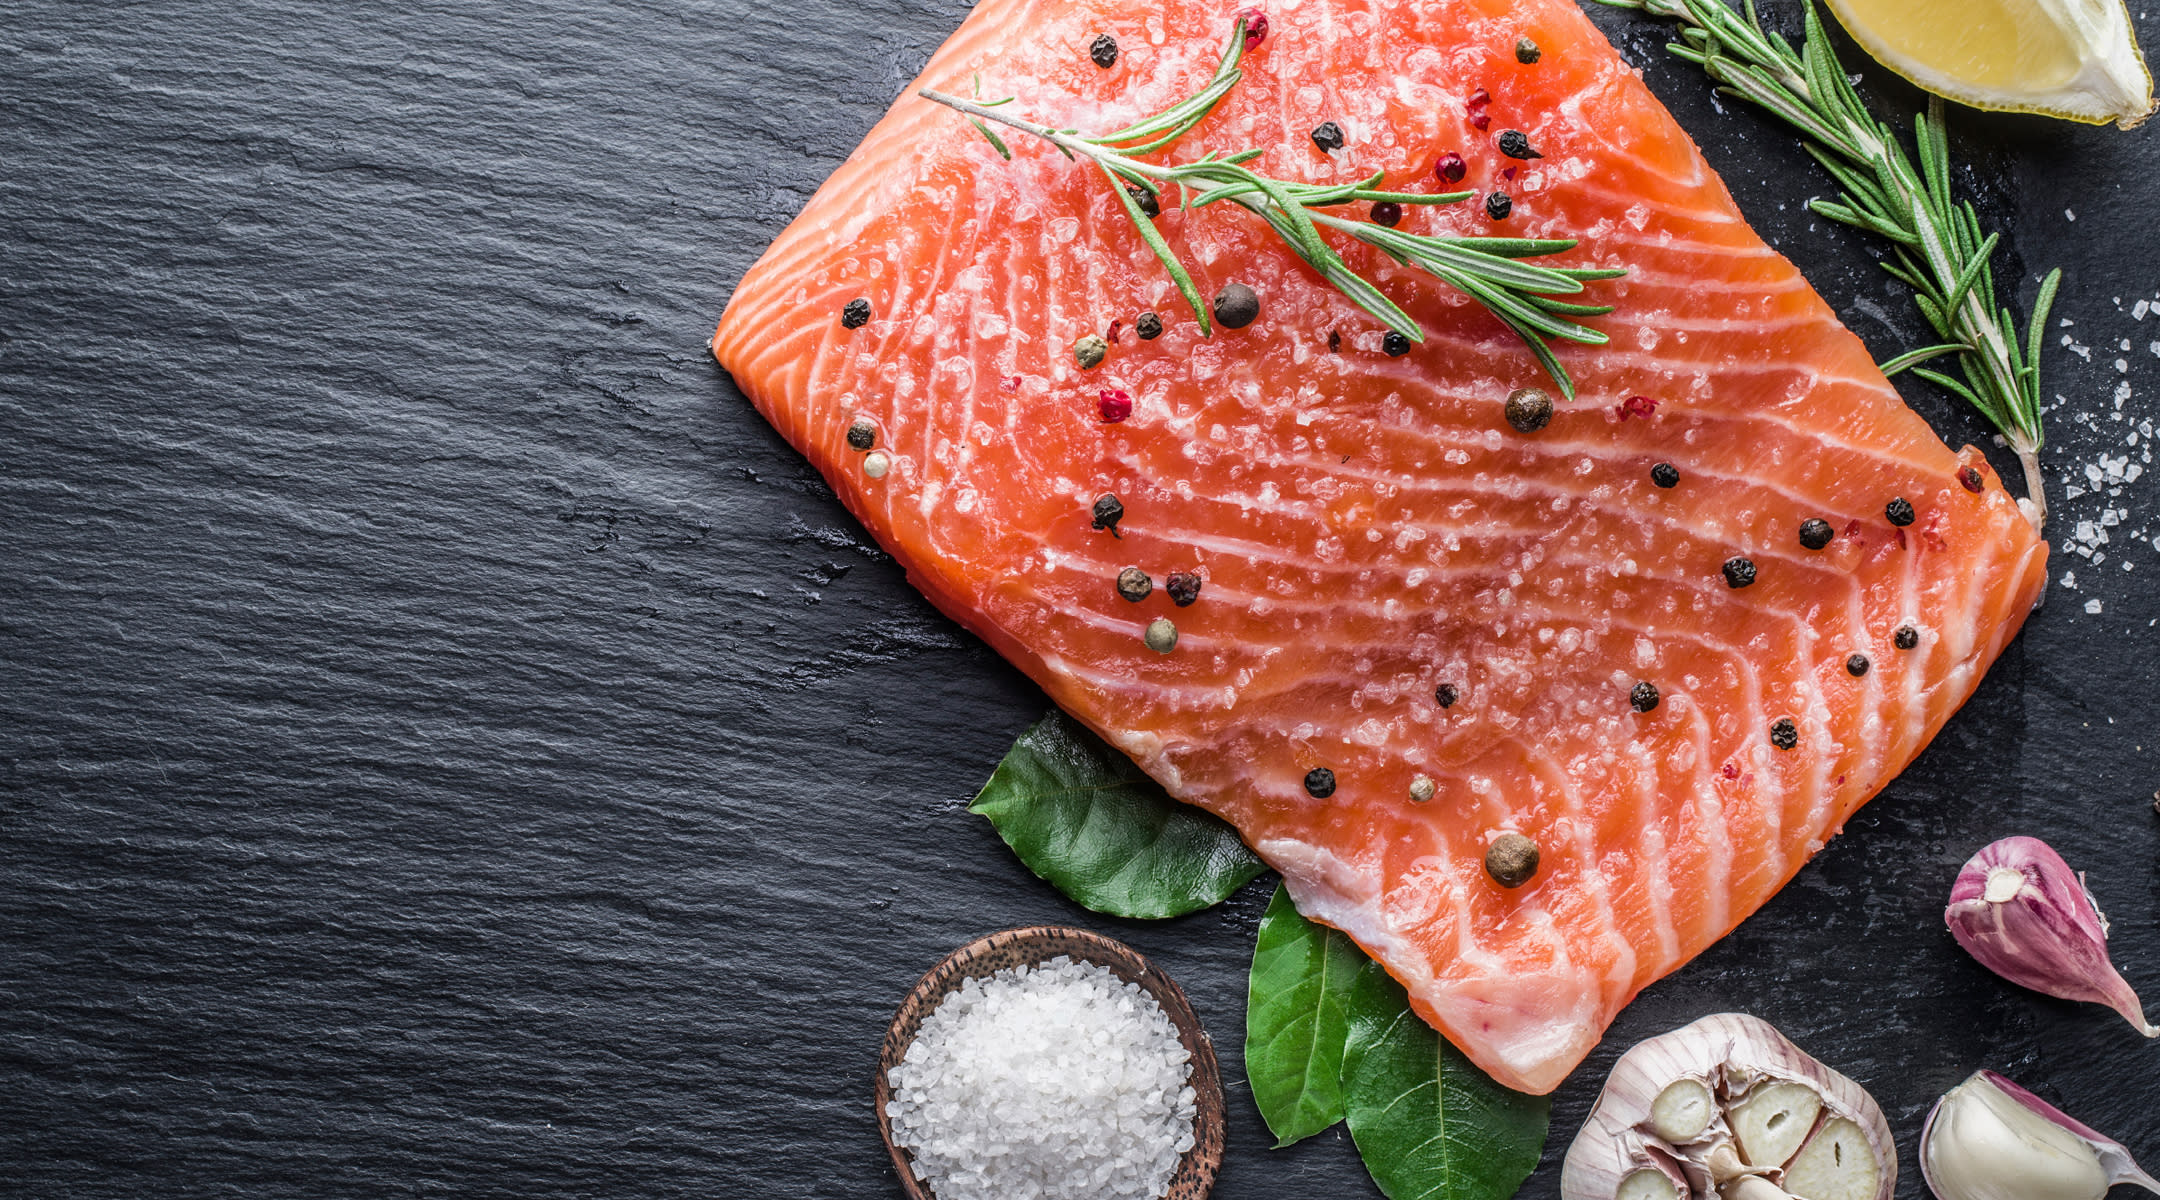 Eat More Fish During Pregnancy